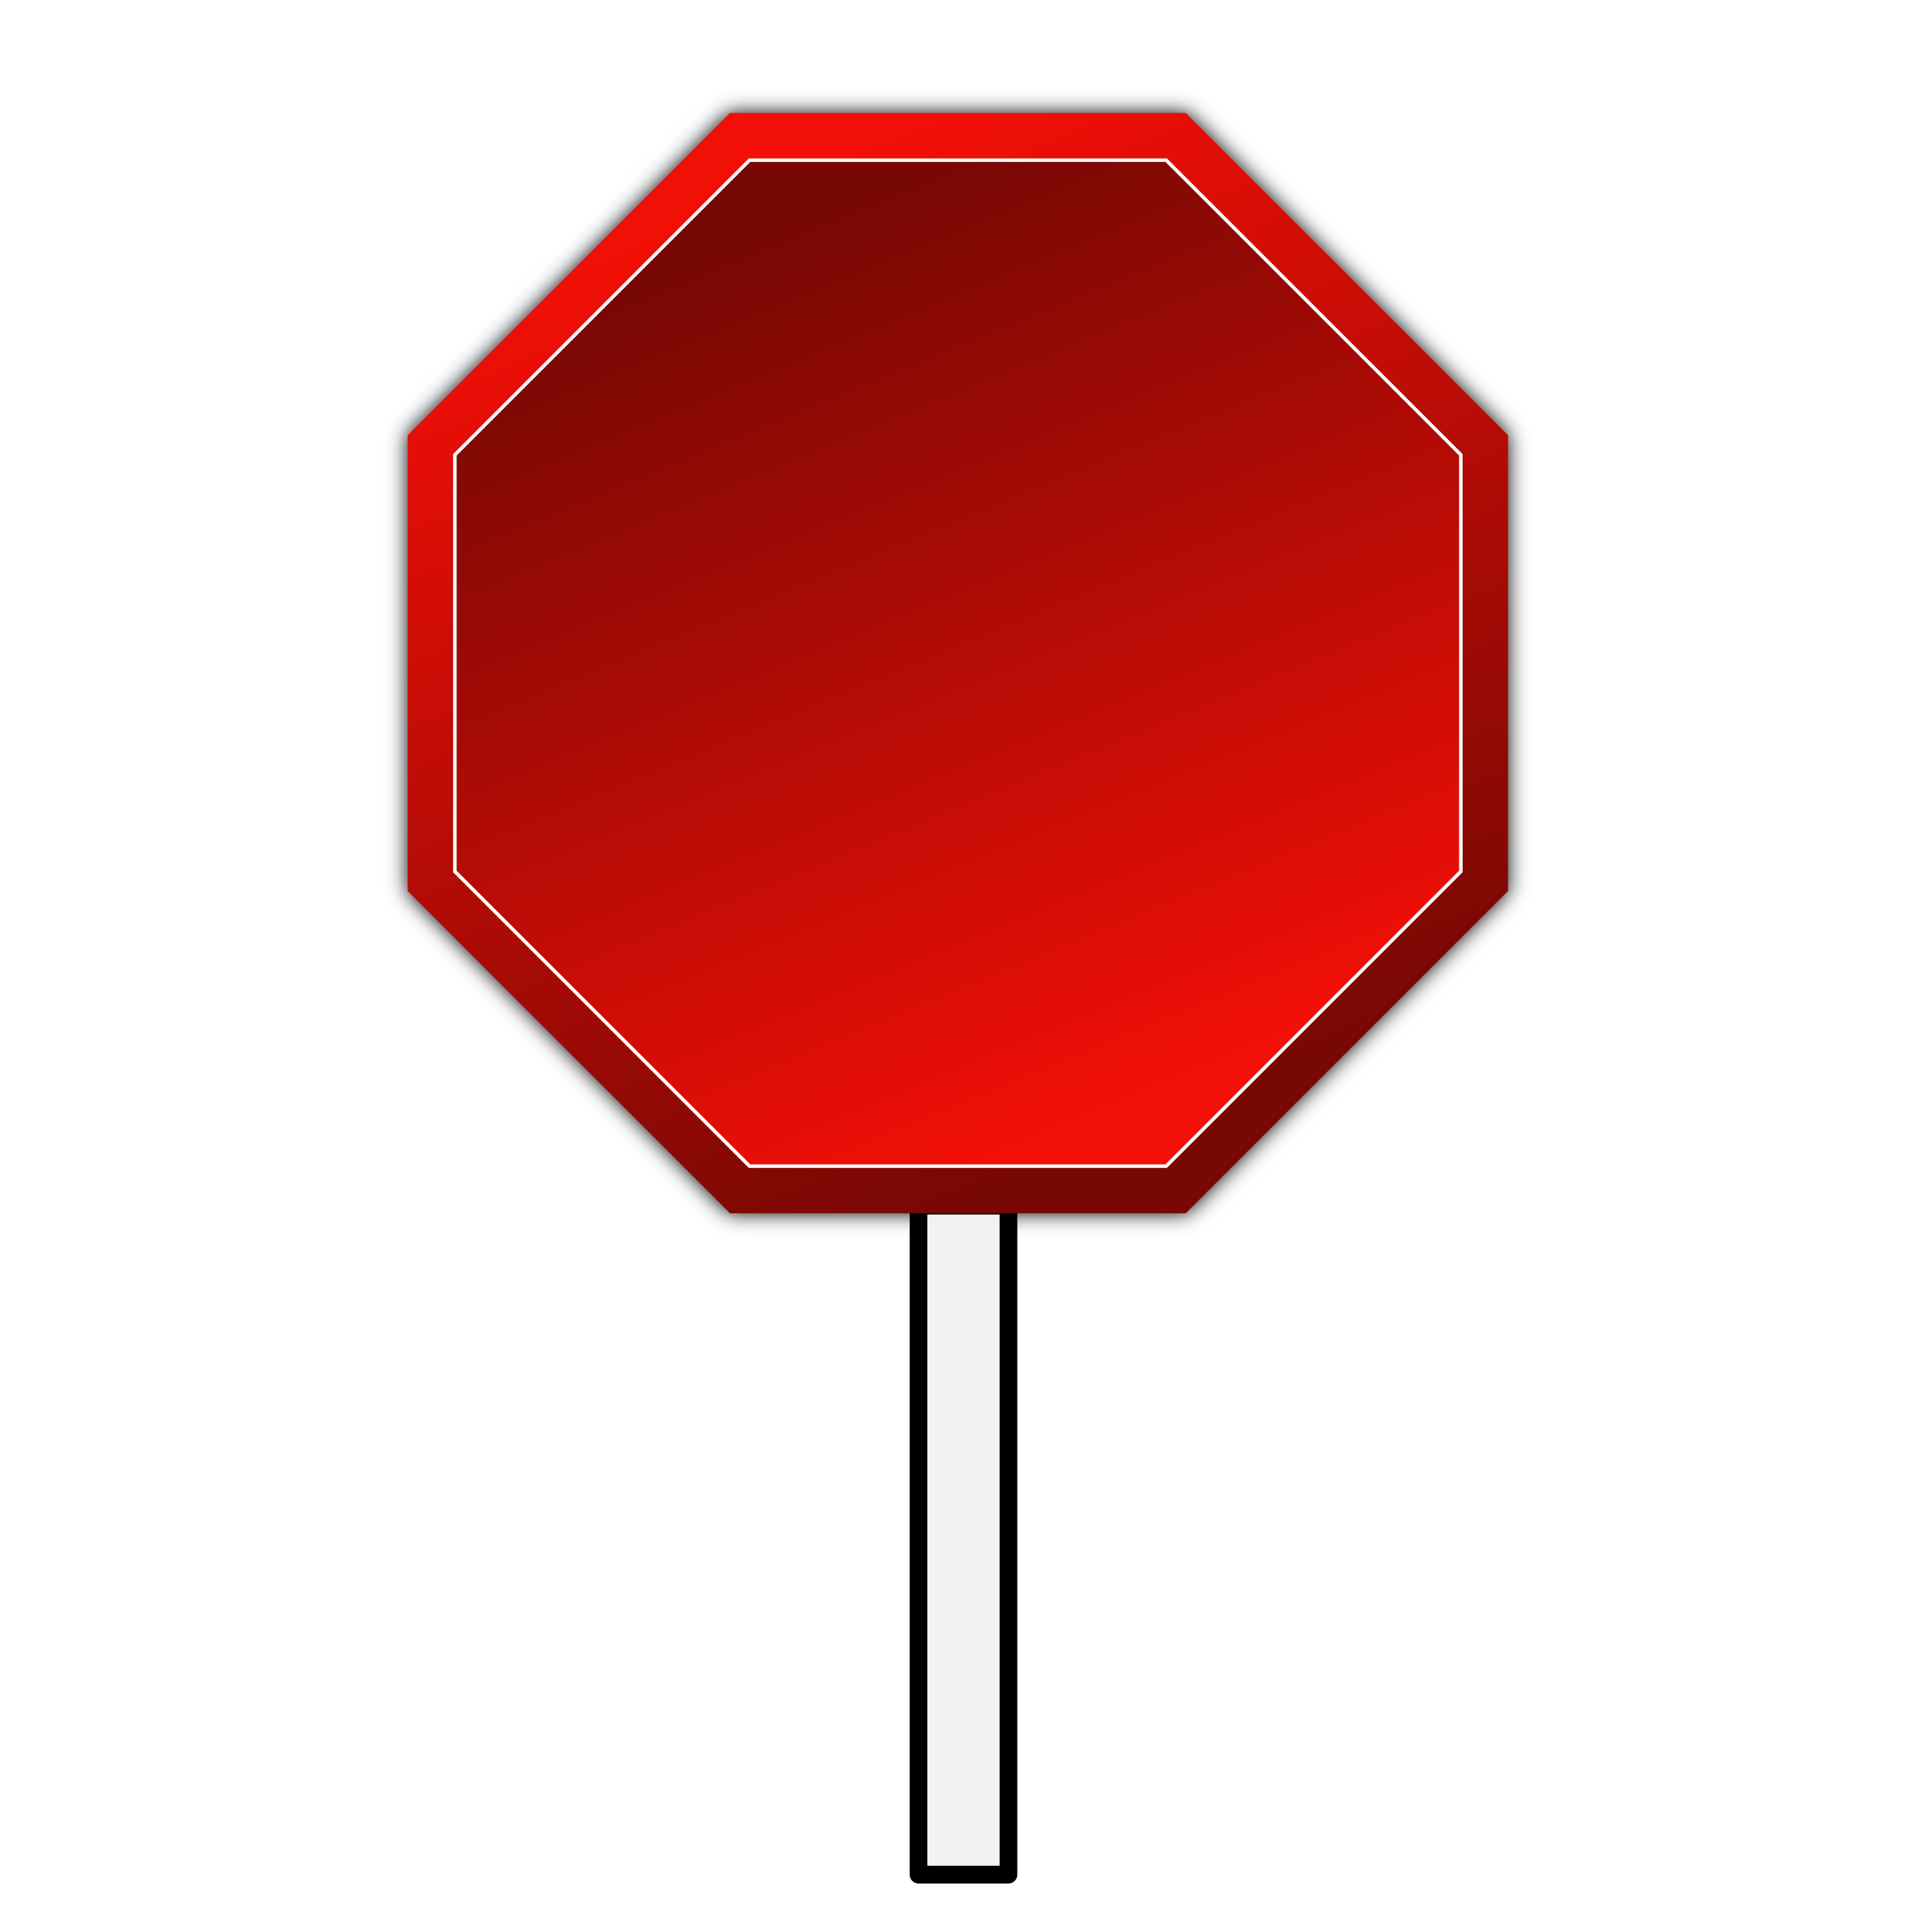 Stop Sign by hypocore